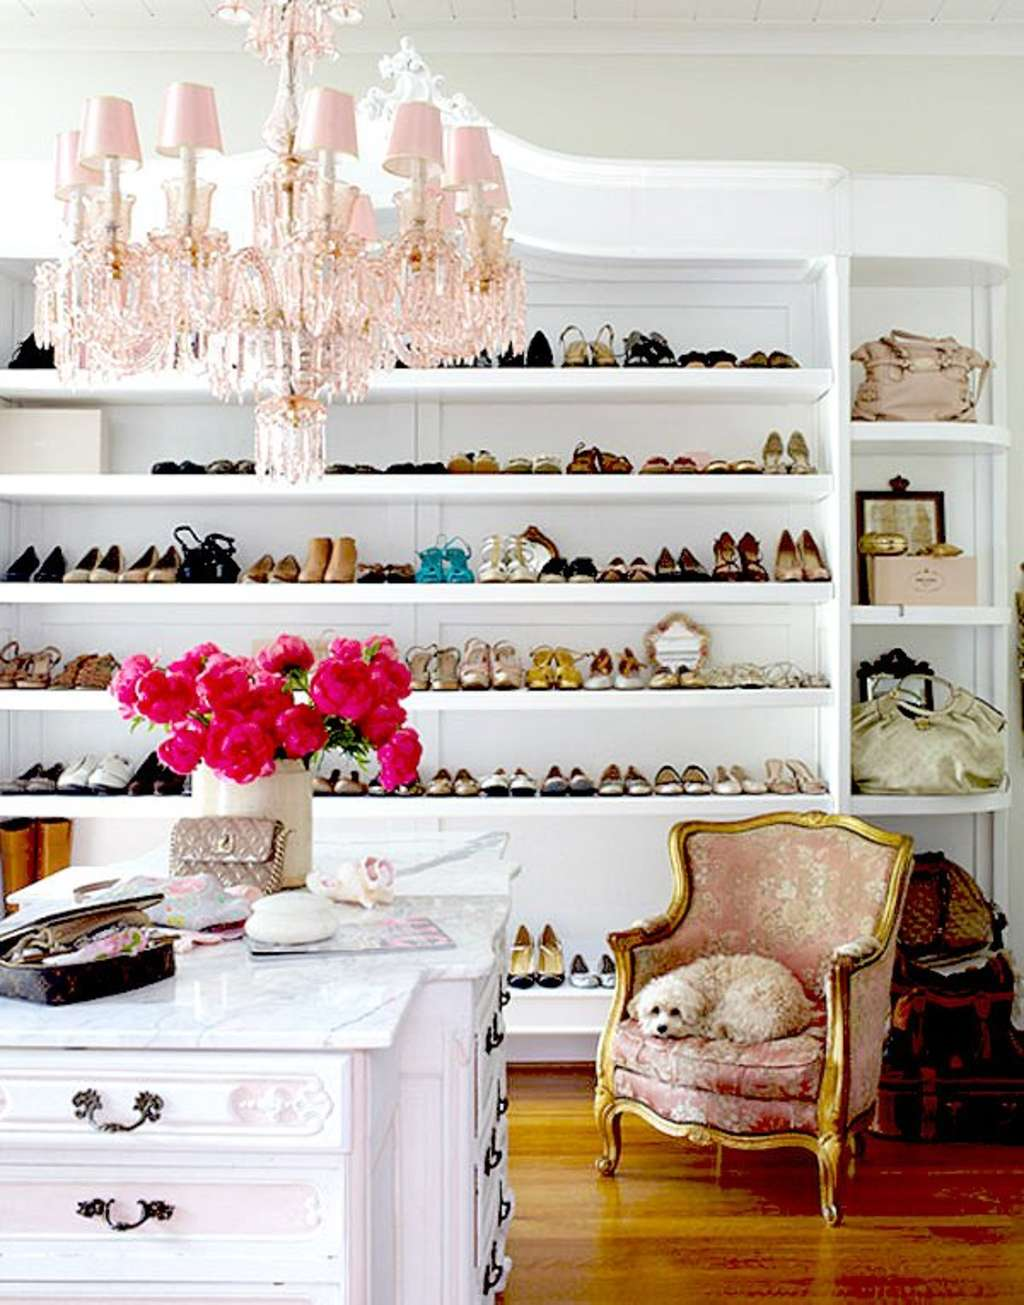 13 Bedrooms Turned Into the Dreamiest of Dream Closets